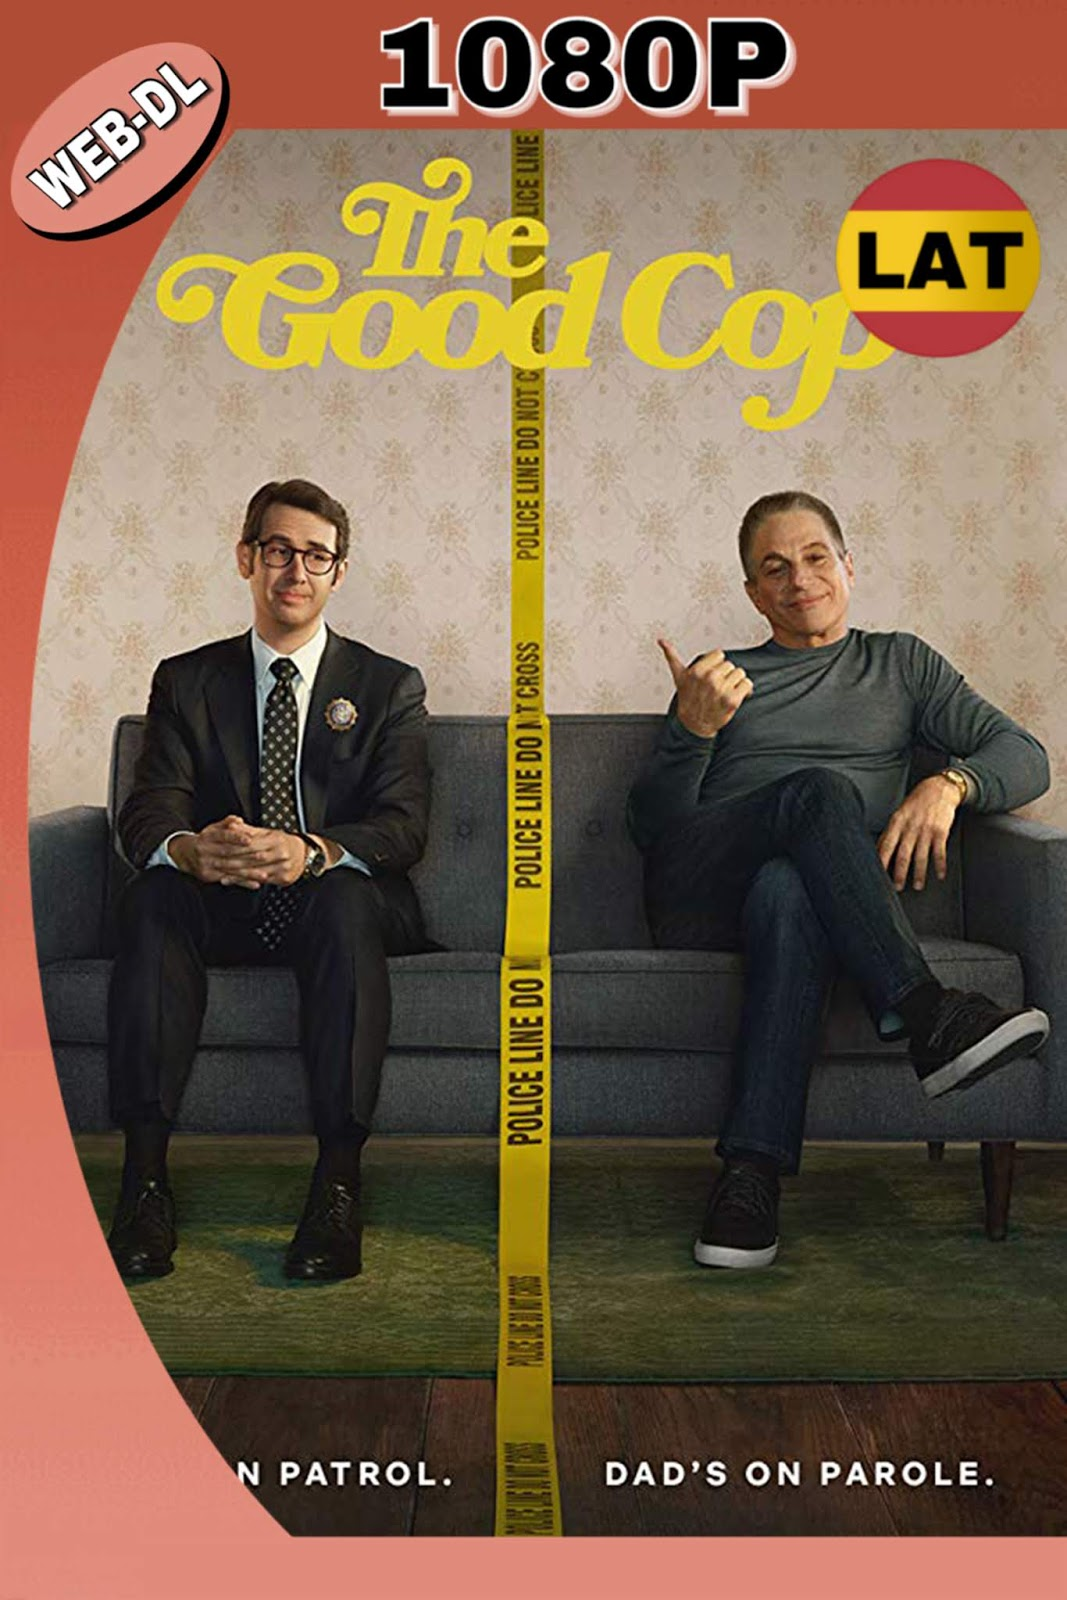 THE GOOD COP 2018 TEMPORADA 1 NF WEBDL 1080P 19GB.mkv